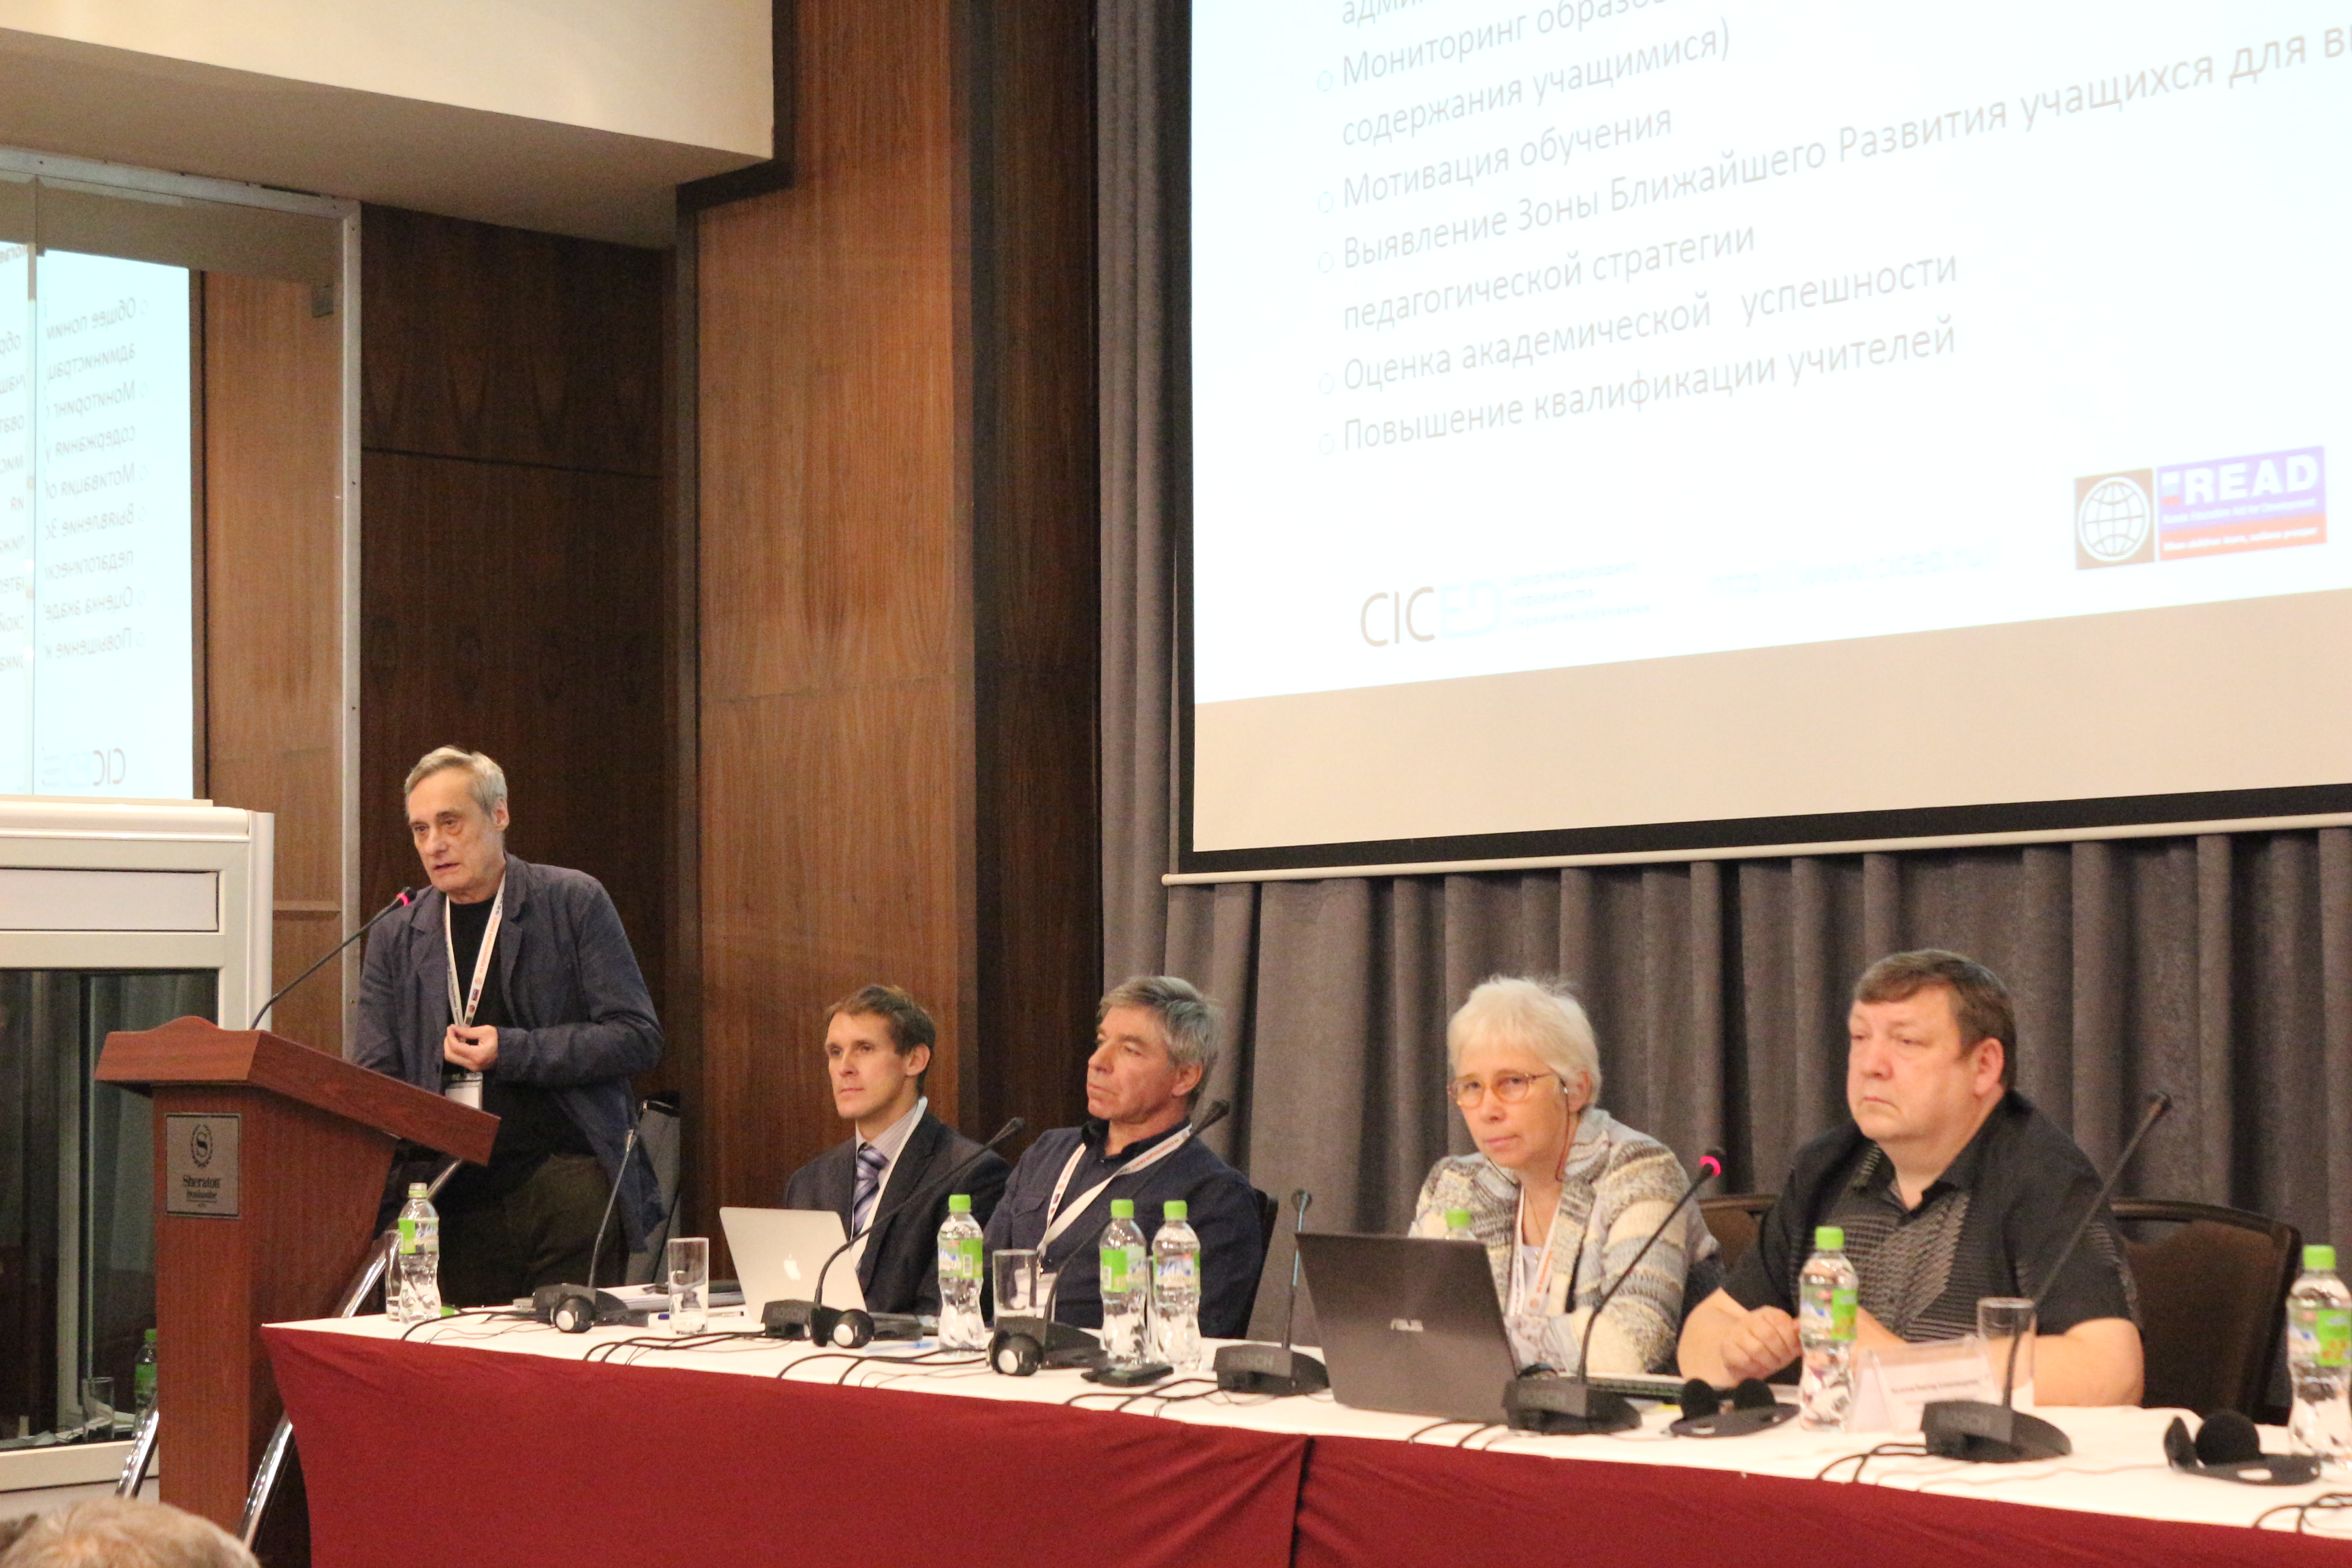 CICED Session  at EAOKO Conference